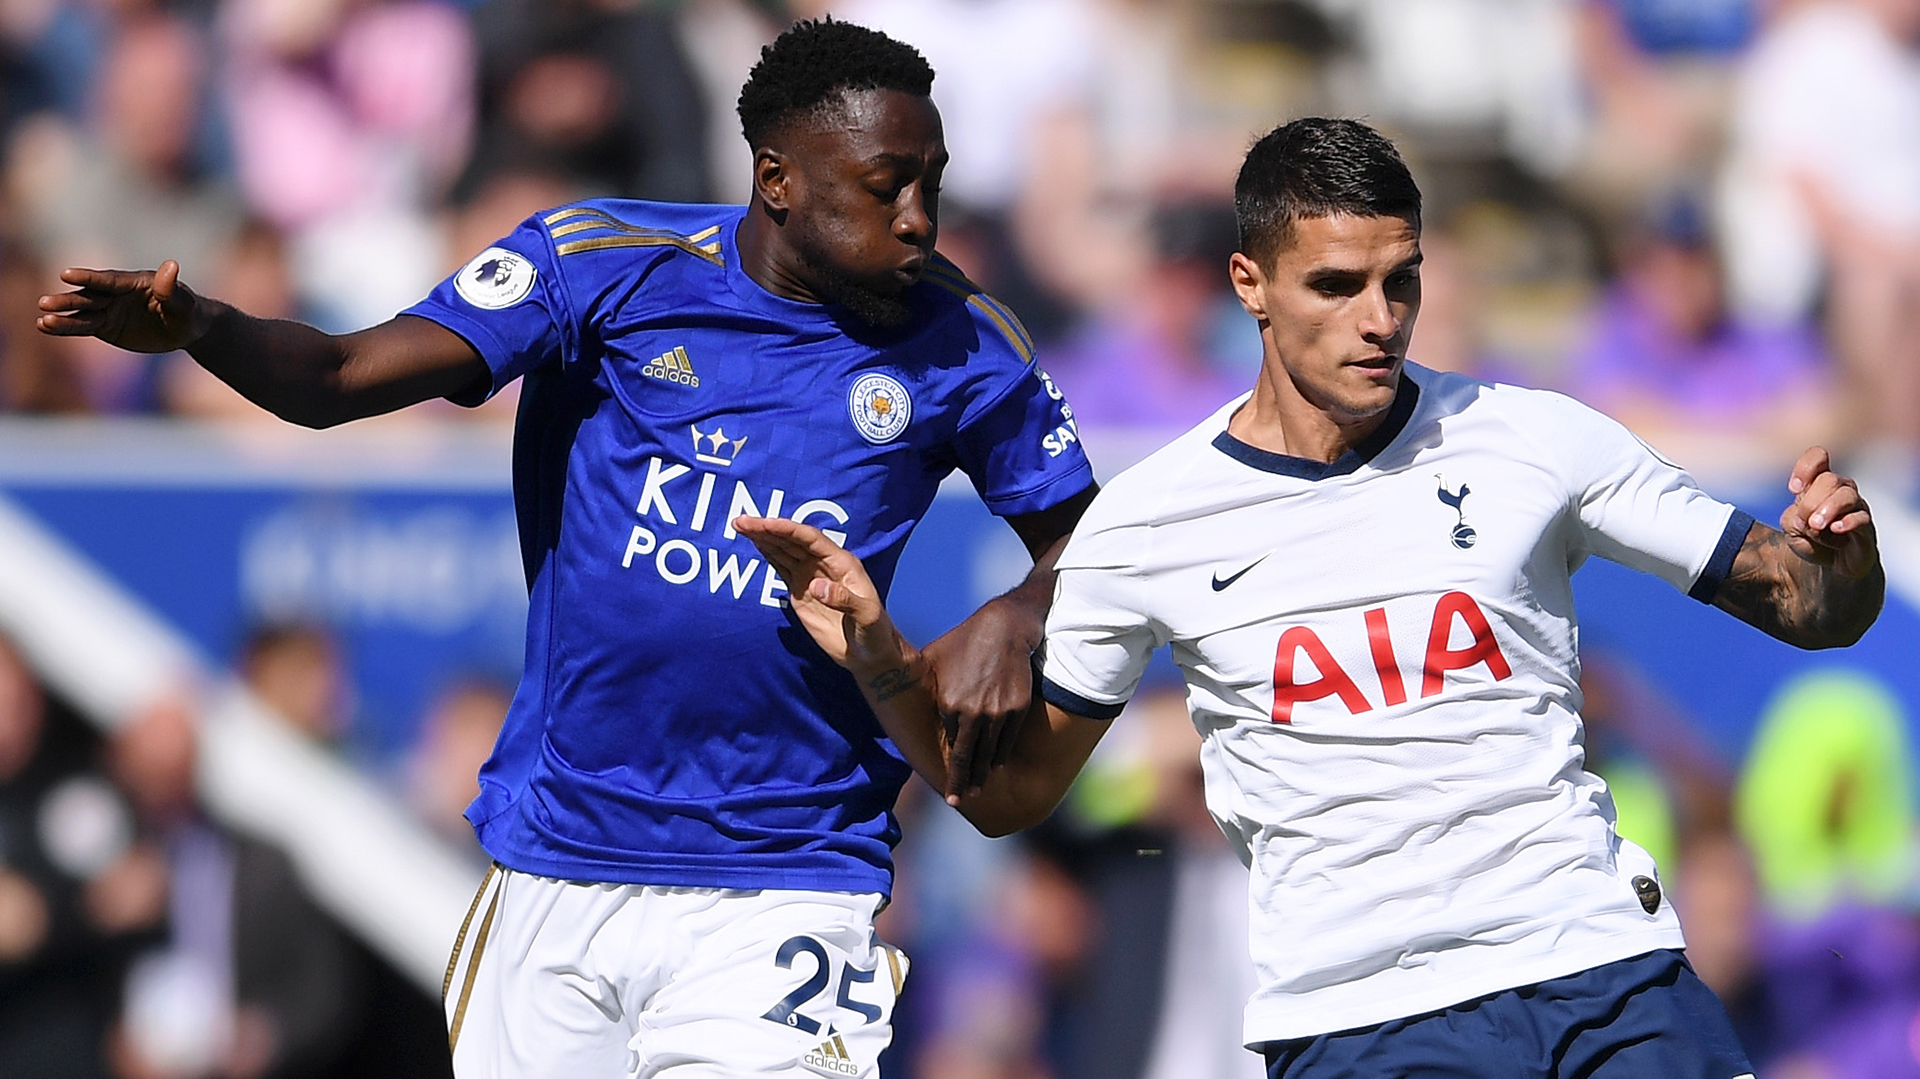 VAR disallows Ndidi's opener for Leicester City against Tottenham Hotspur